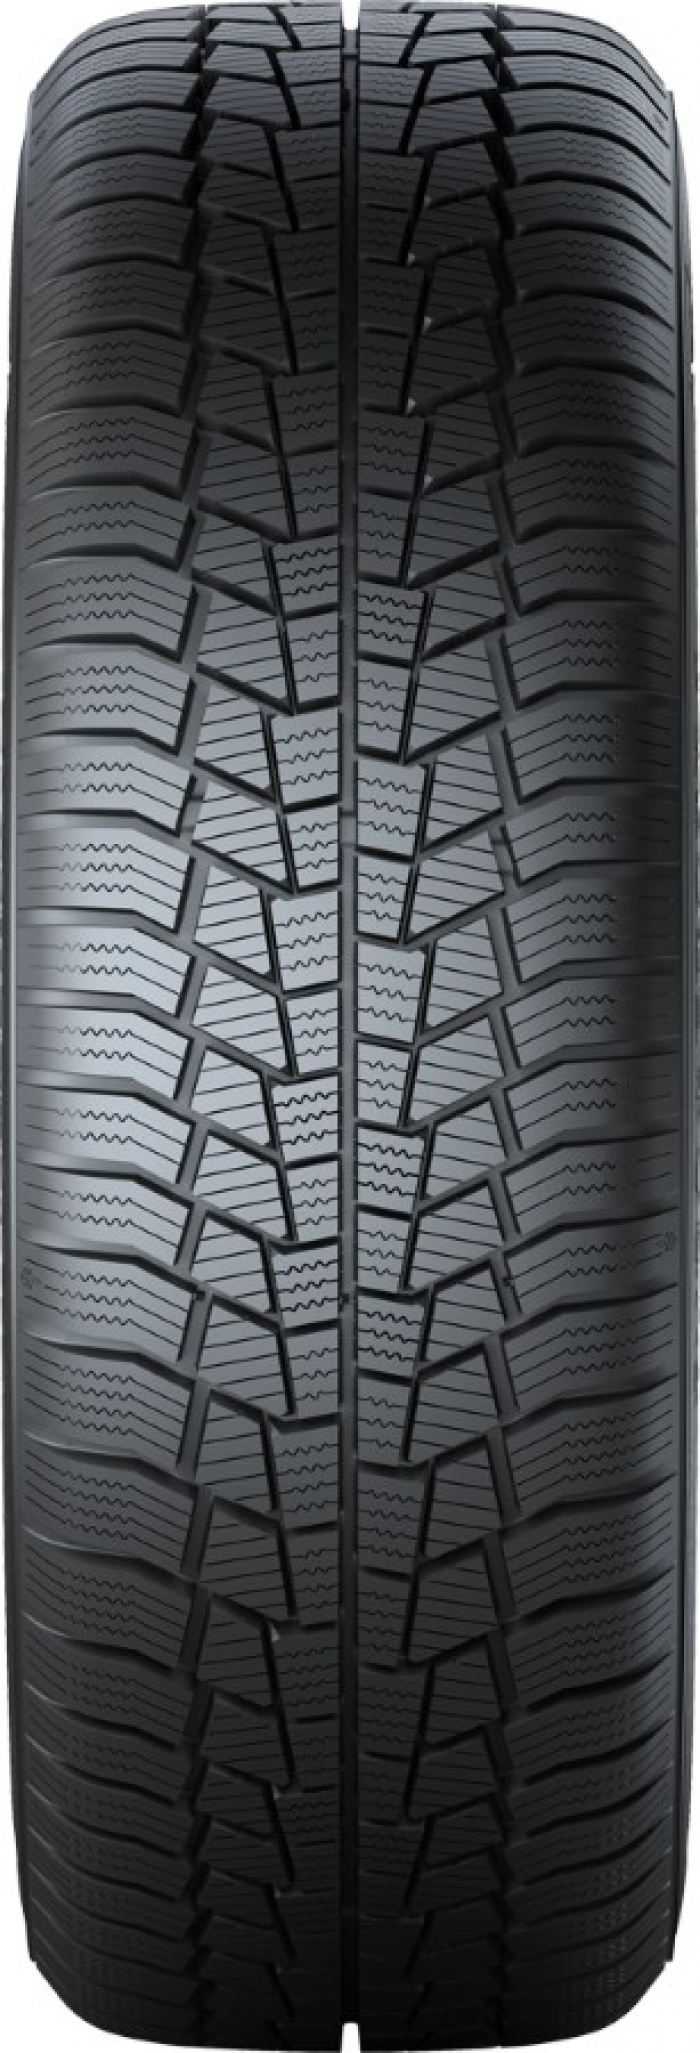 Gislaved Euro Frost 6 205/55 R16 91H  не шип